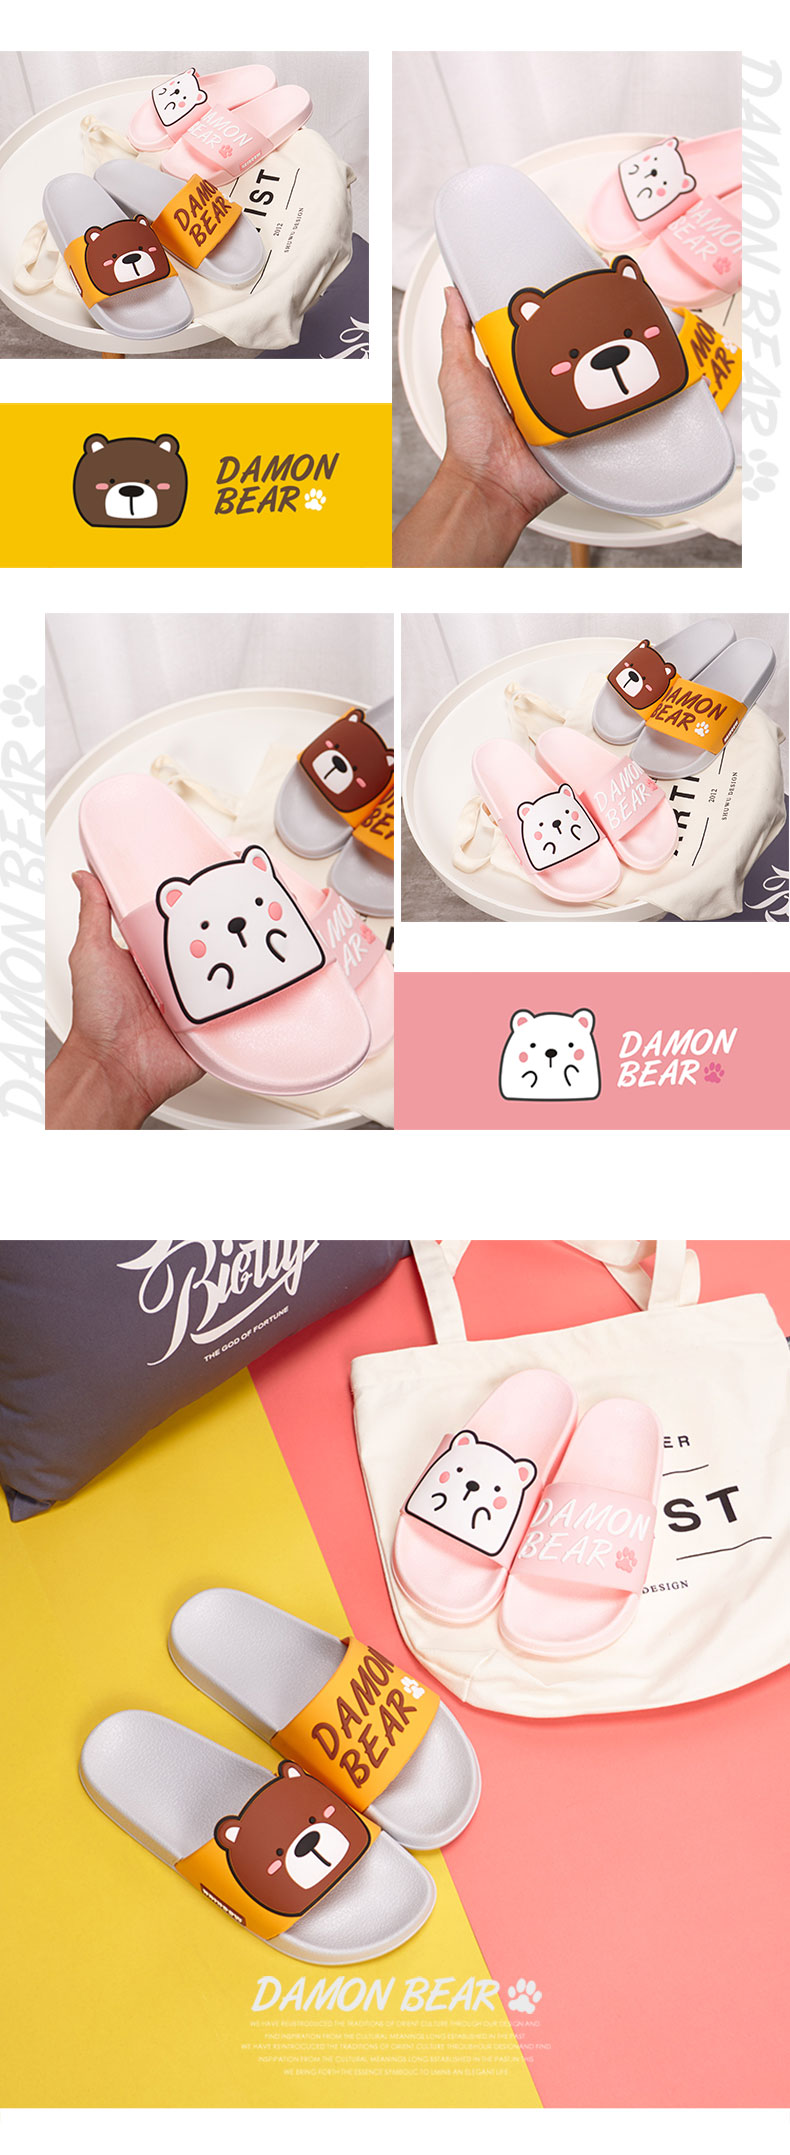 Cartoon Women Summer Slippers Cute Damon Bear Soft Sole Slides Home Slippers Indoor & Outdoor Sandals Women Shoes Flip Flops 12